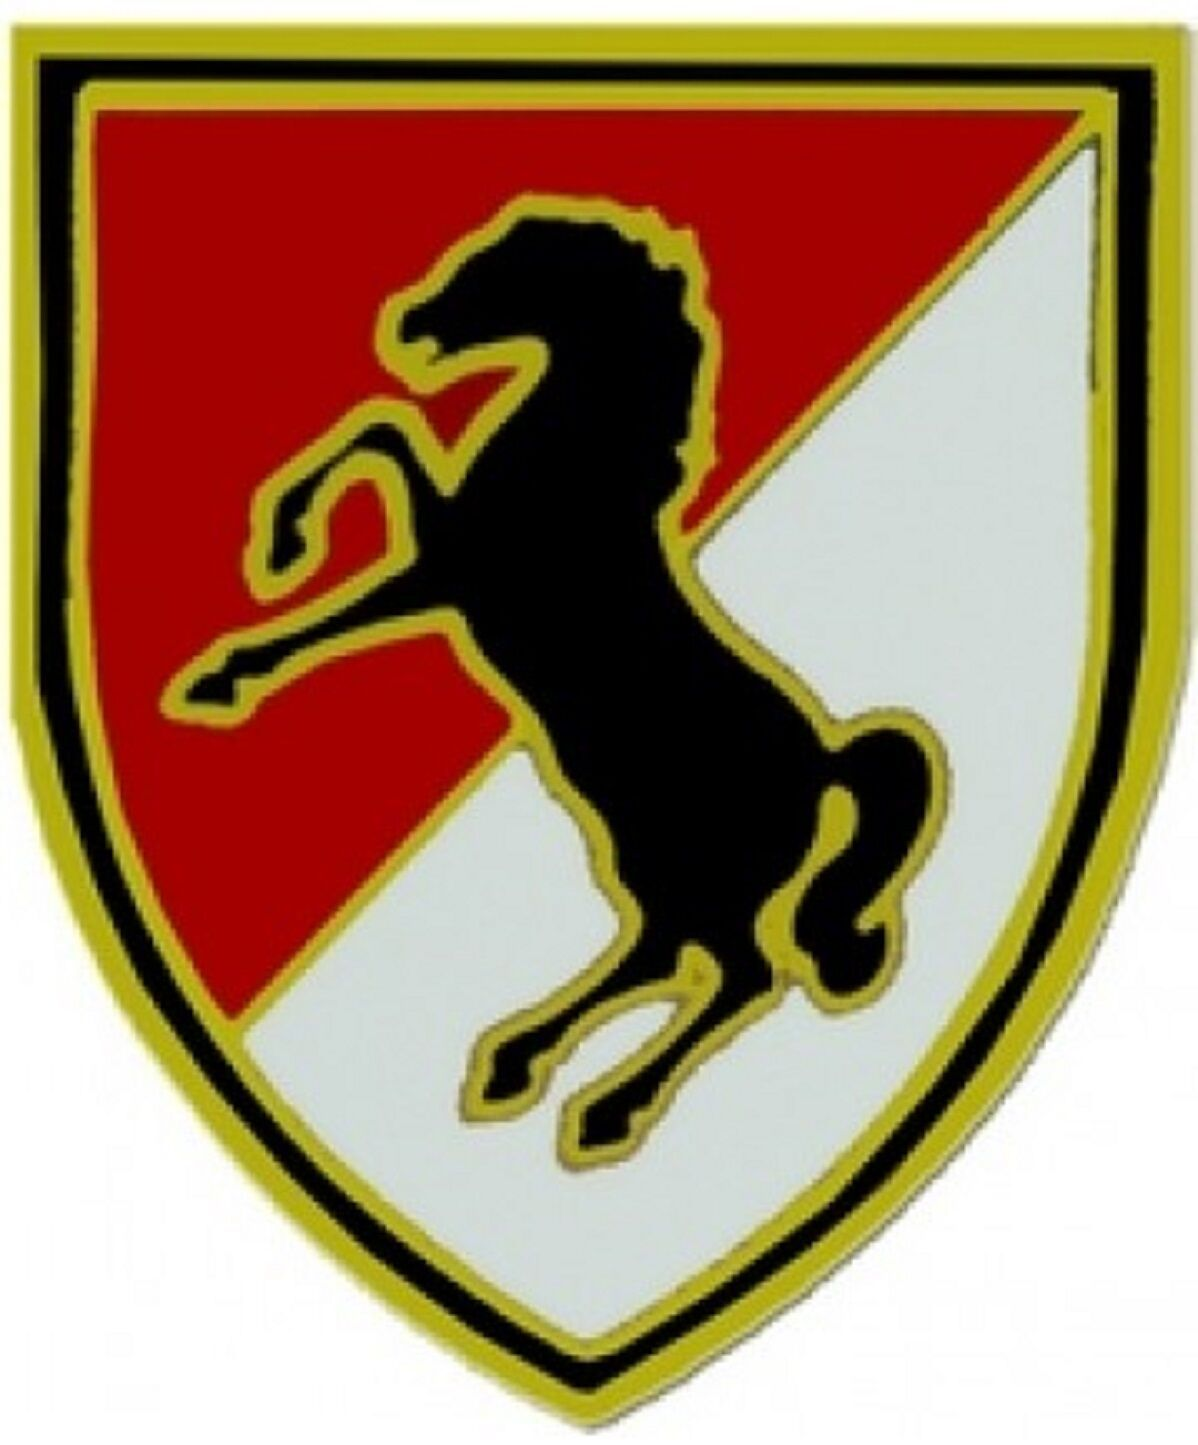 Primary image for US Army 11th ACR Service Combat Badge  (2 inch)